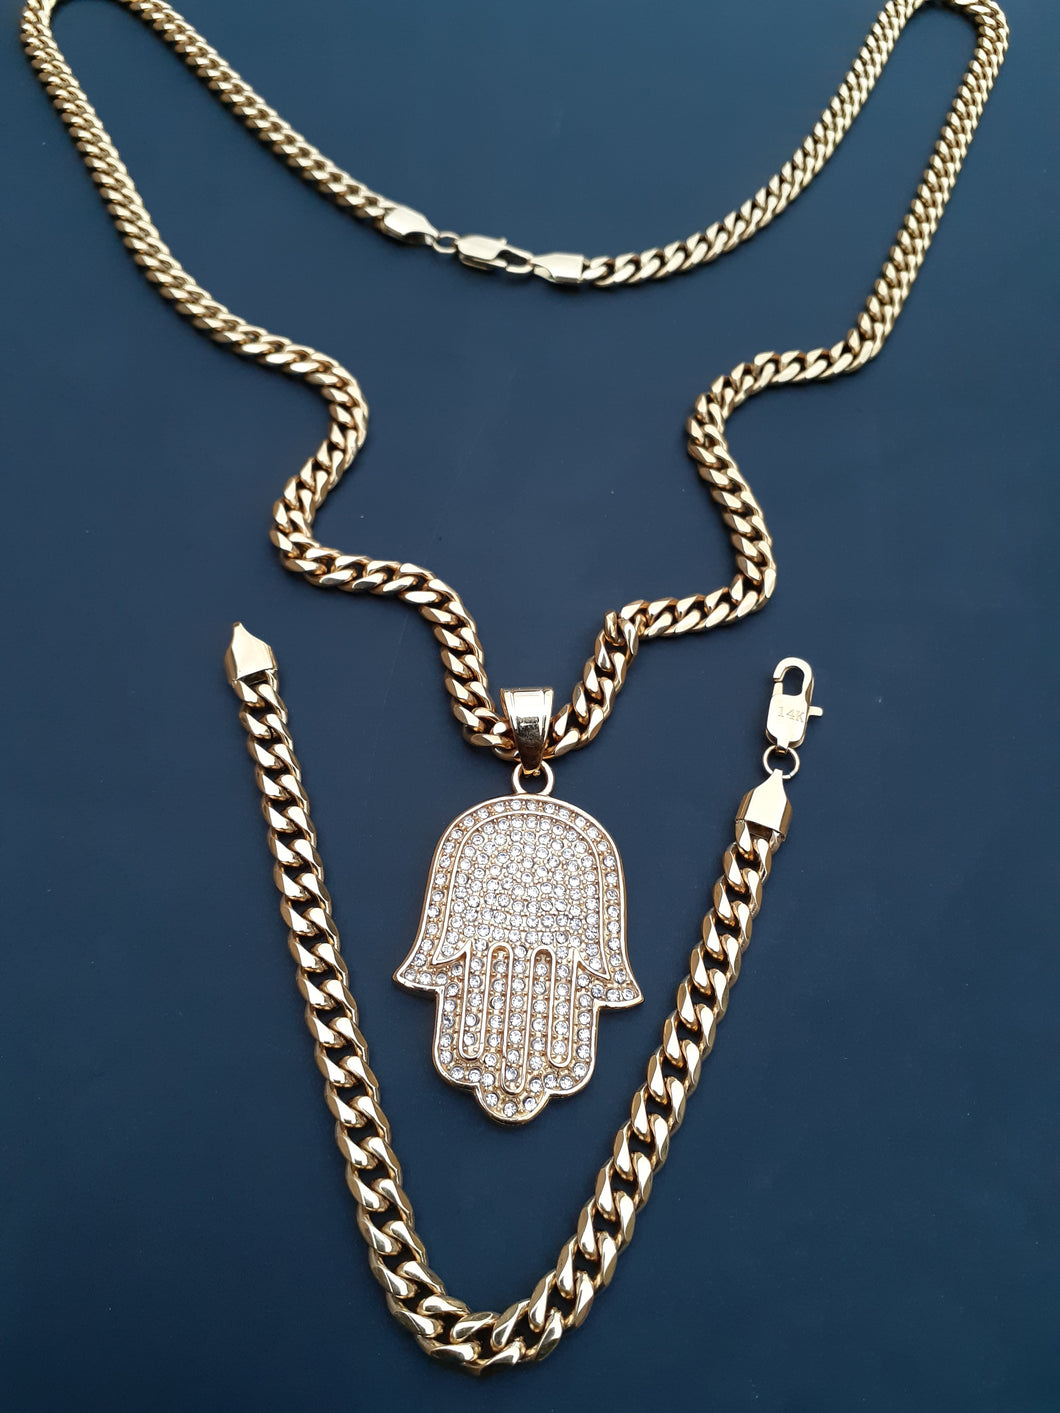 14k gold plated 6mm Miami Cuban link Chain bracelet  and pendant set